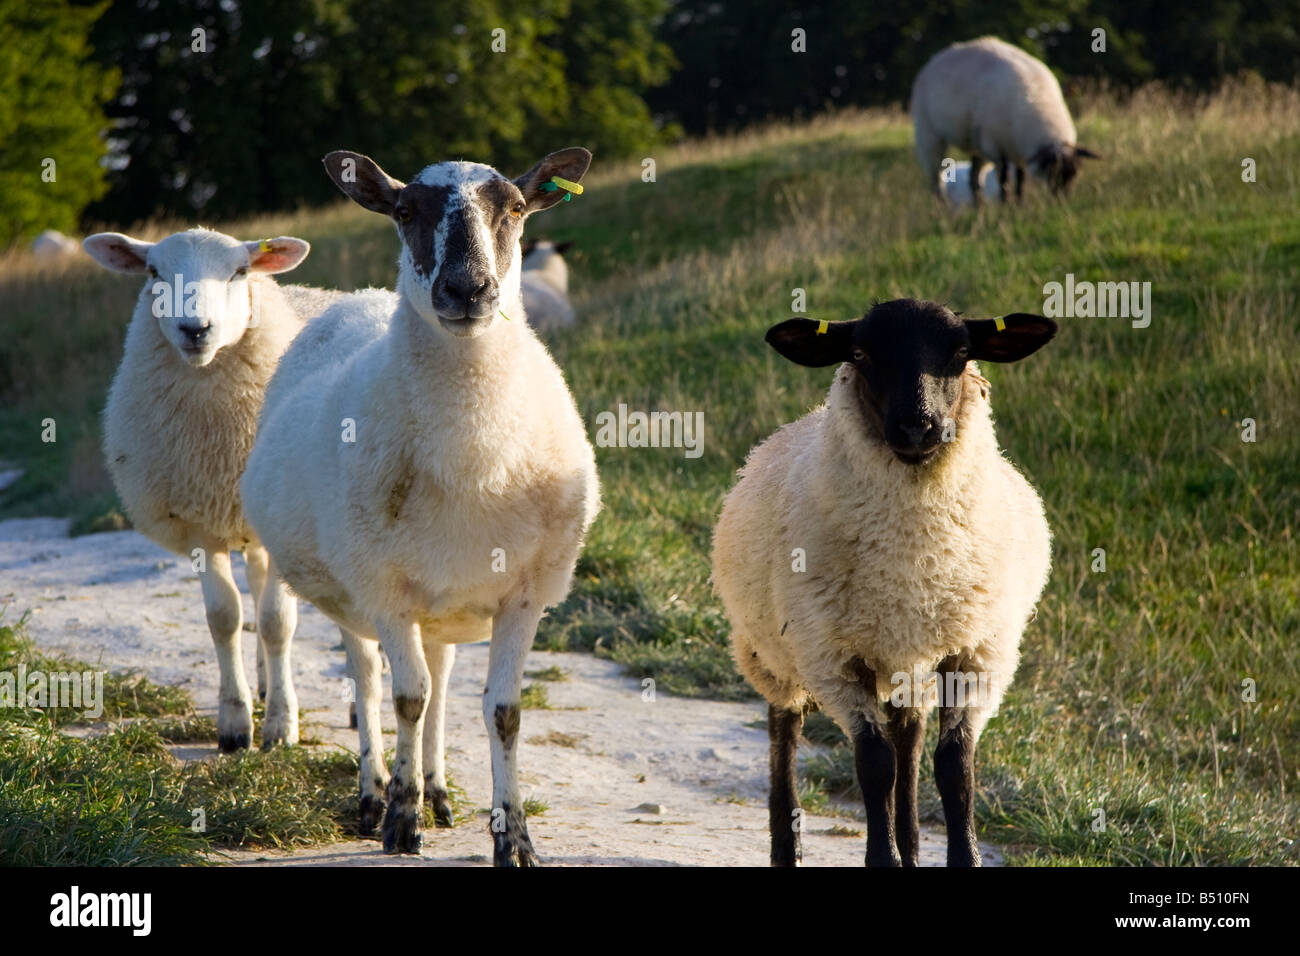 Three sheep standing on chalk path looking directly at viewer, early morning - Stock Image